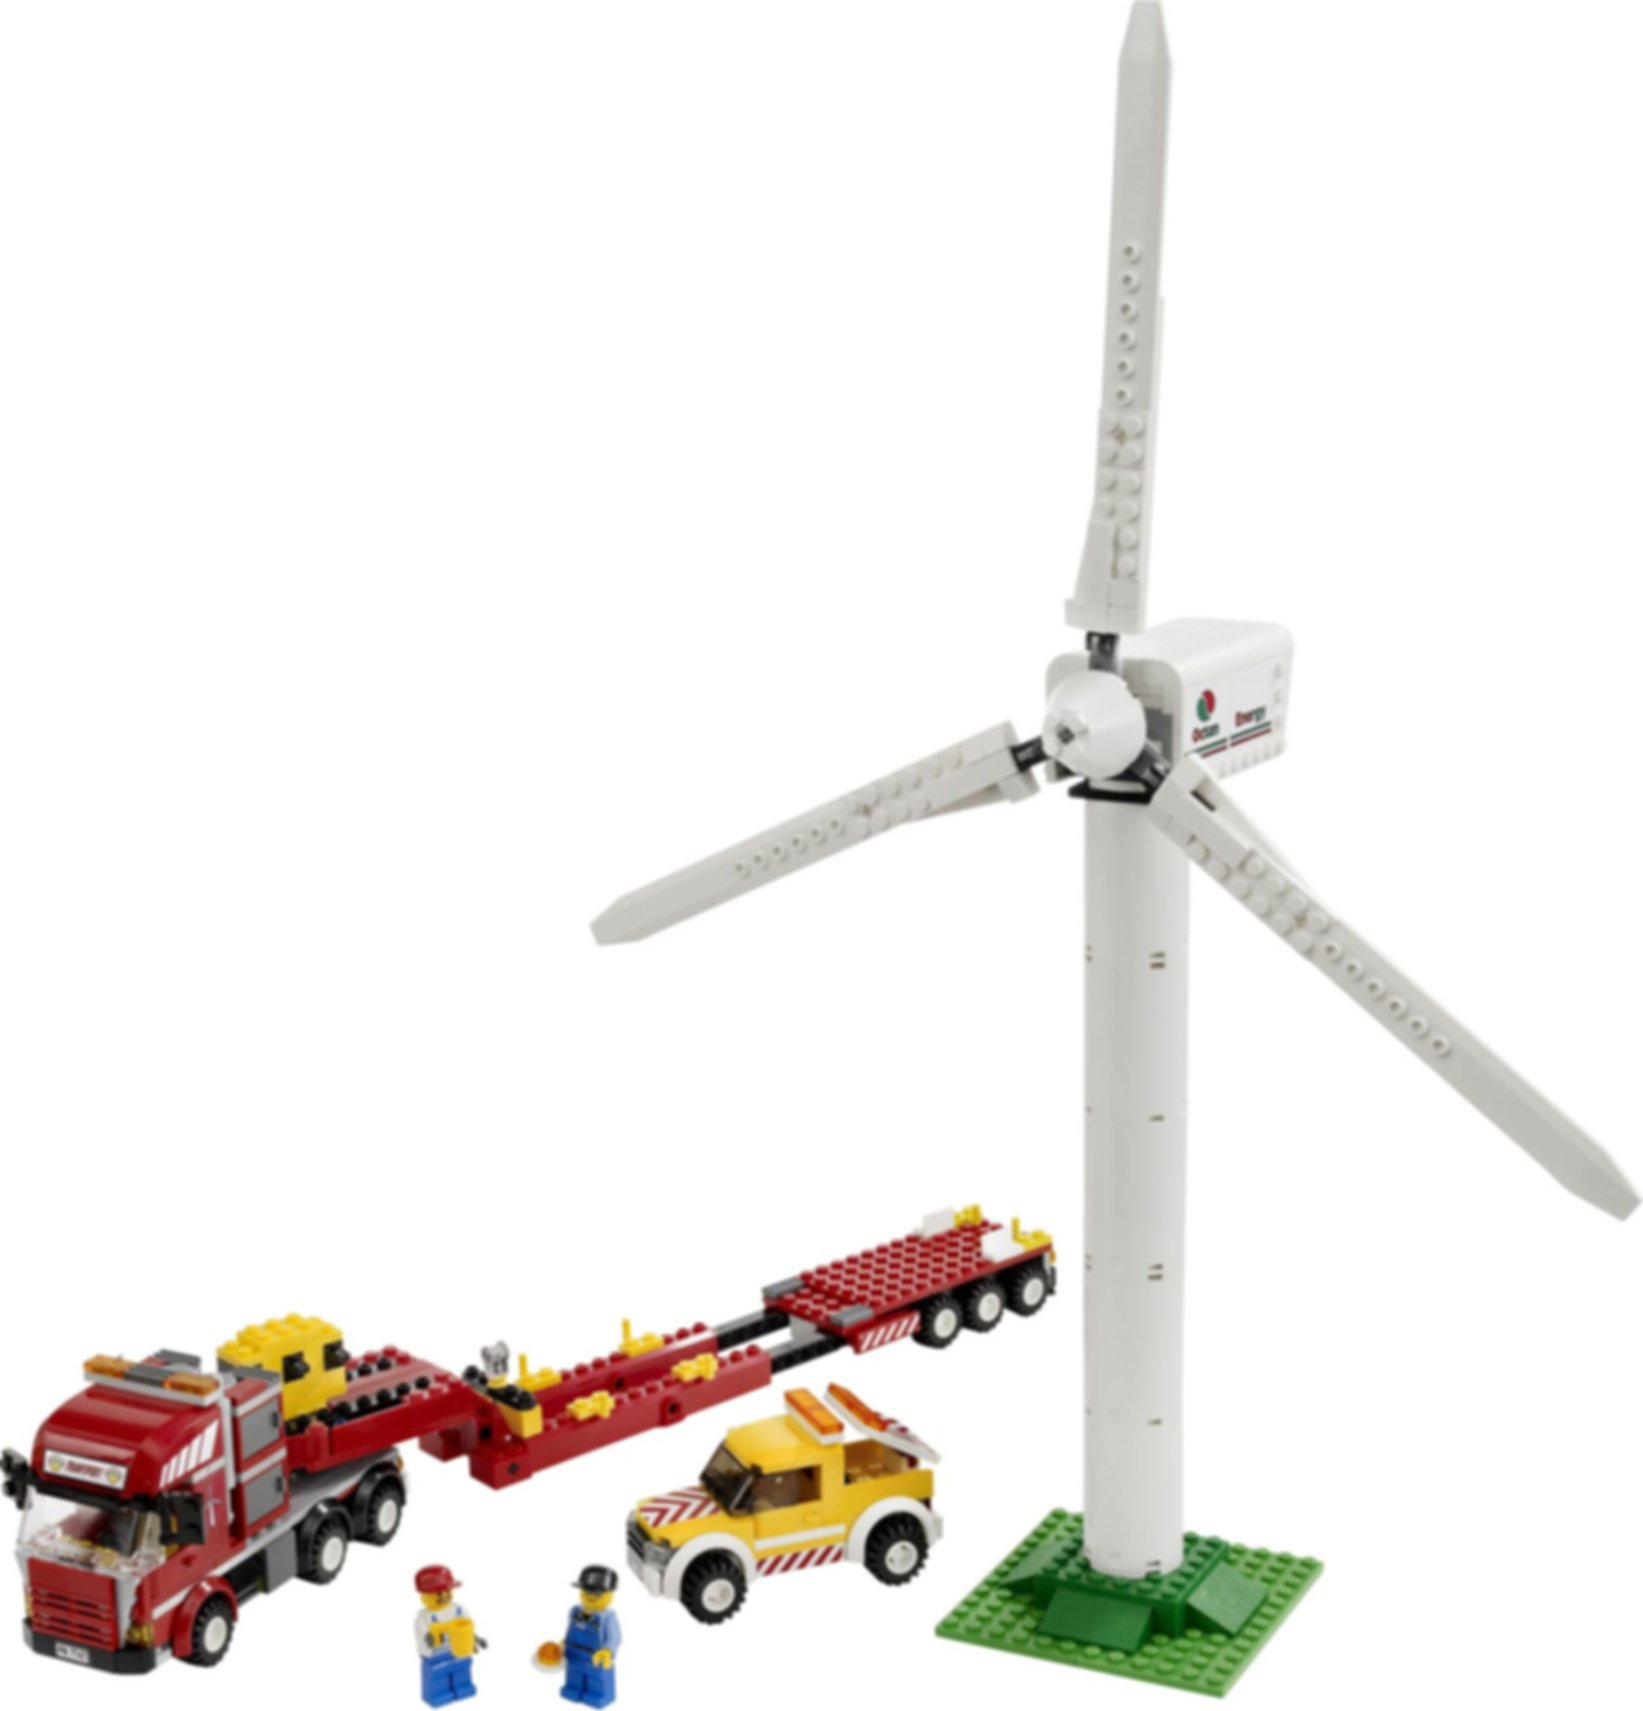 Wind Turbine Transport components